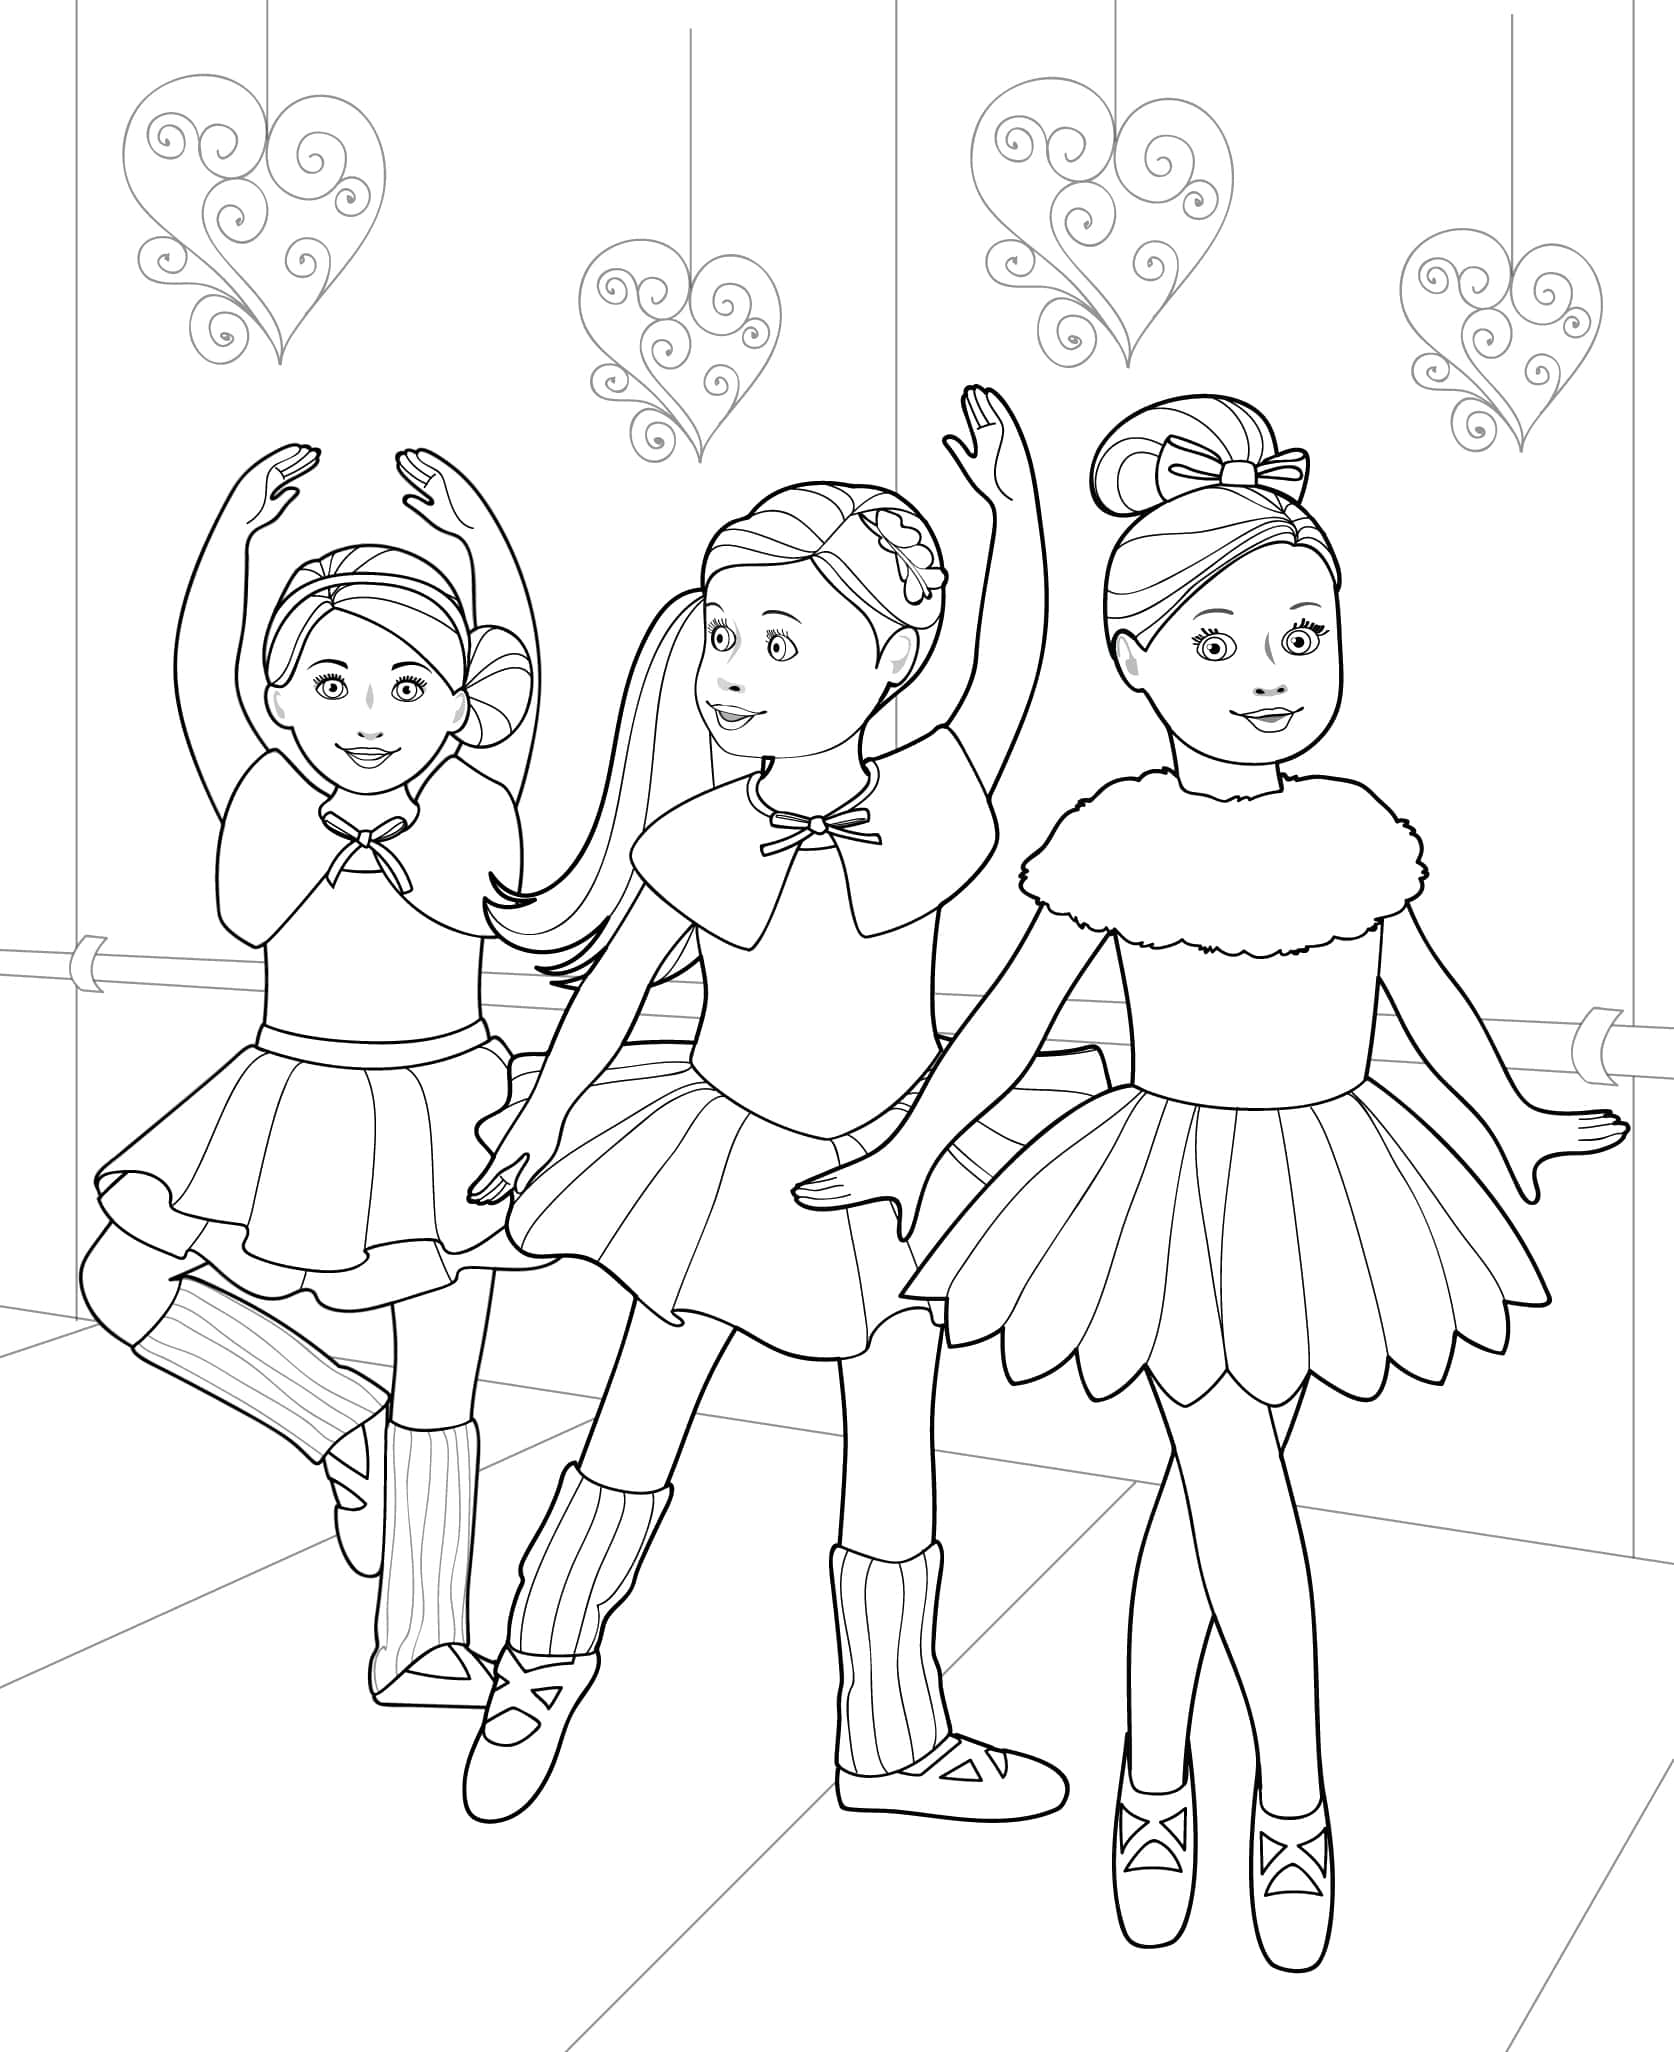 Doll Coloring Books | Our Generation